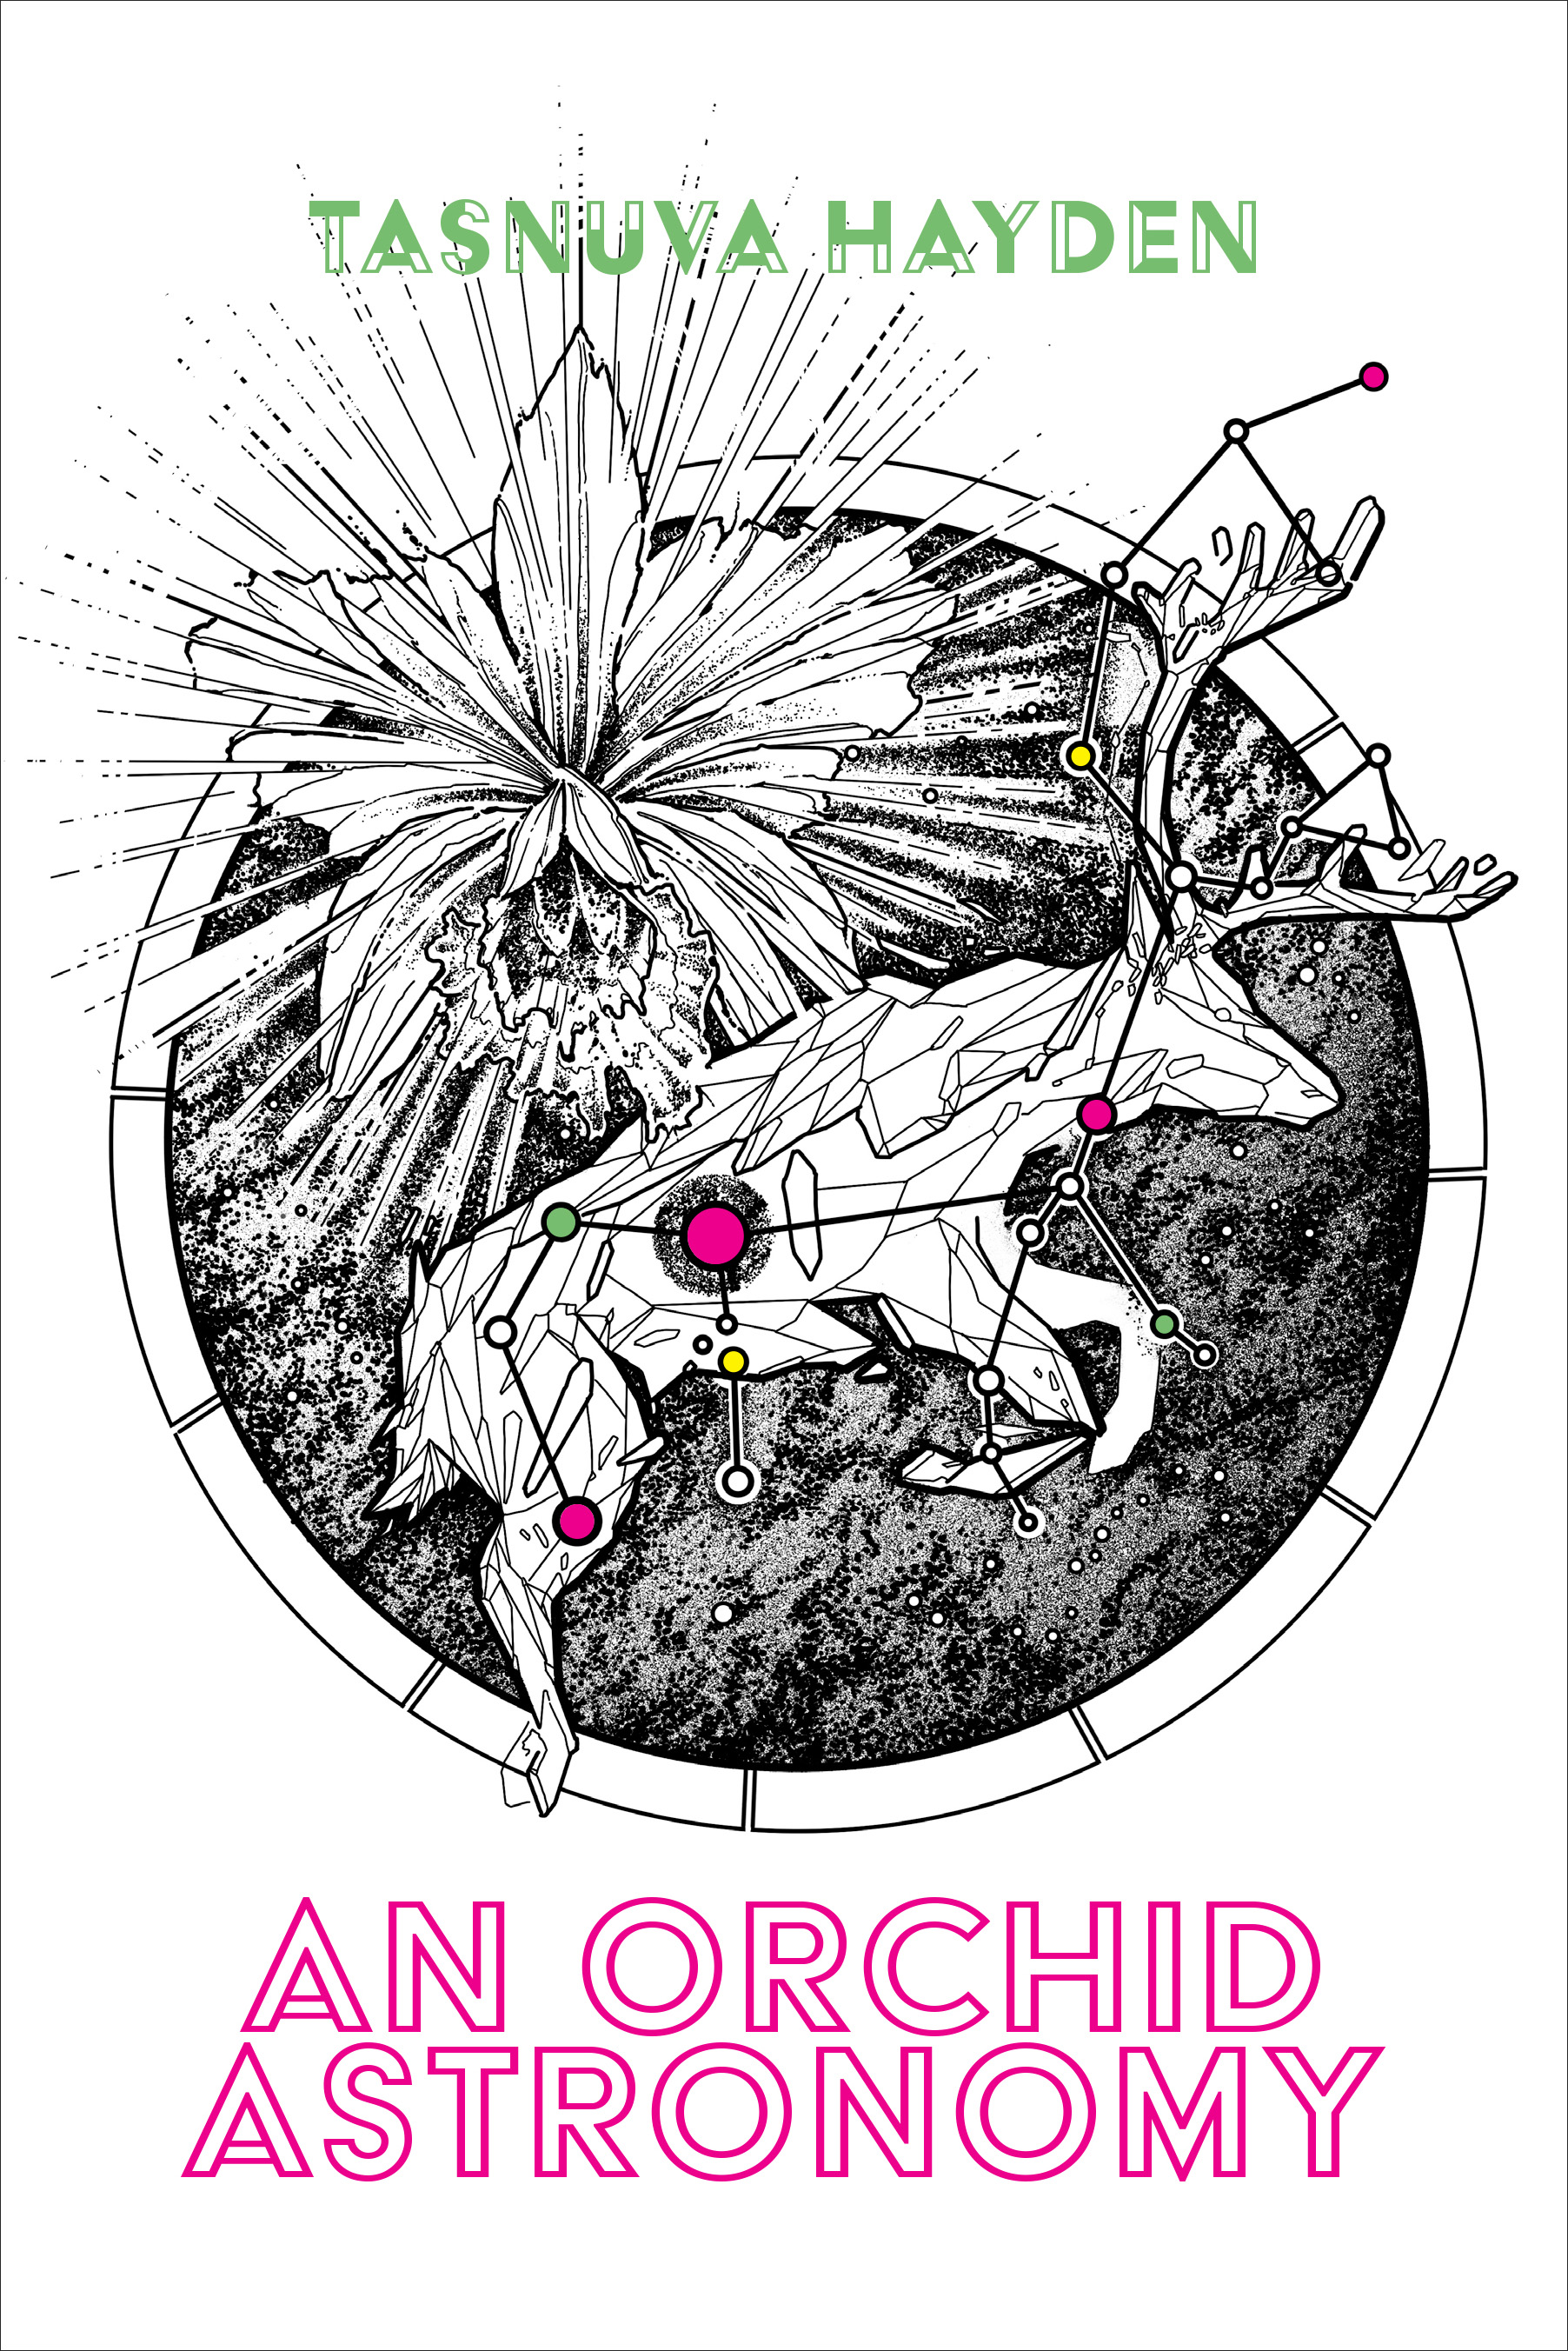 Book cover image for: Orchid Astronomy